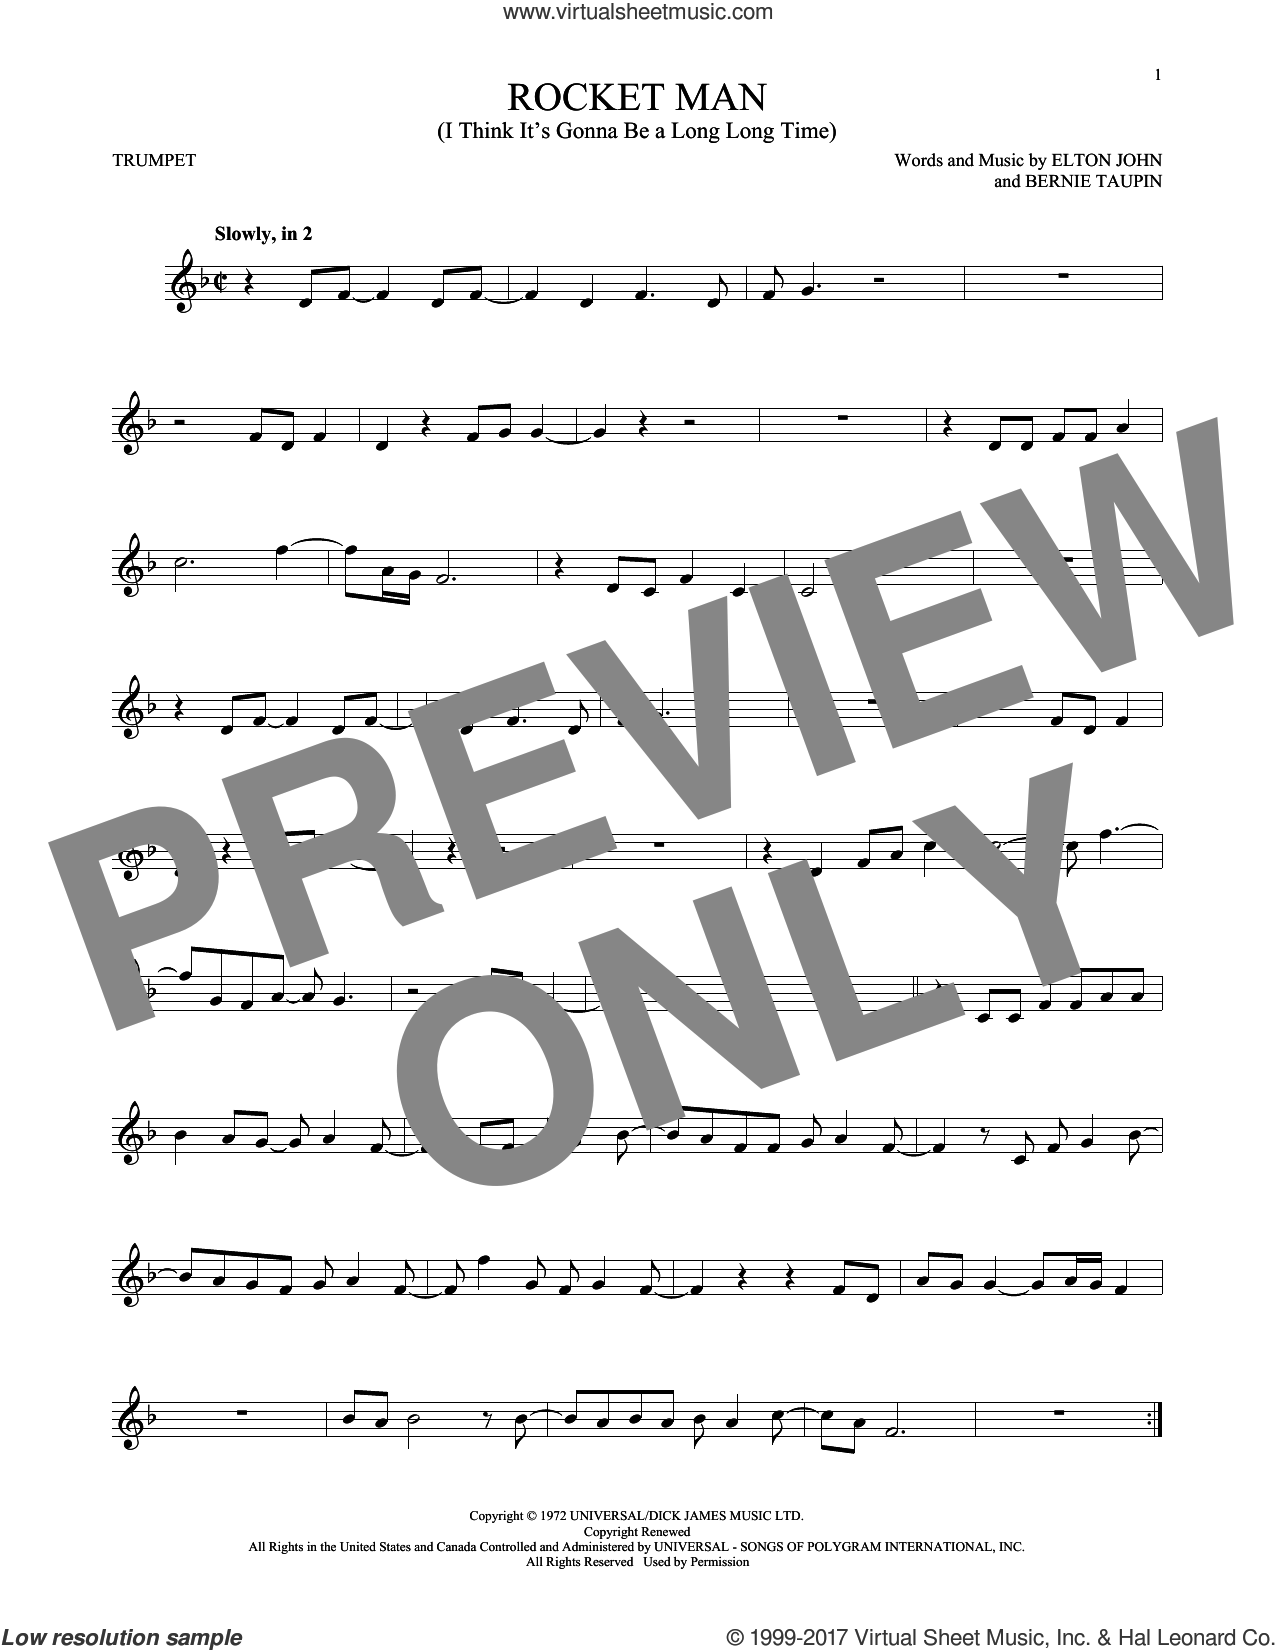 Rocket Man (I Think It's Gonna Be A Long Long Time) sheet music for trumpet solo by Elton John and Bernie Taupin, intermediate skill level